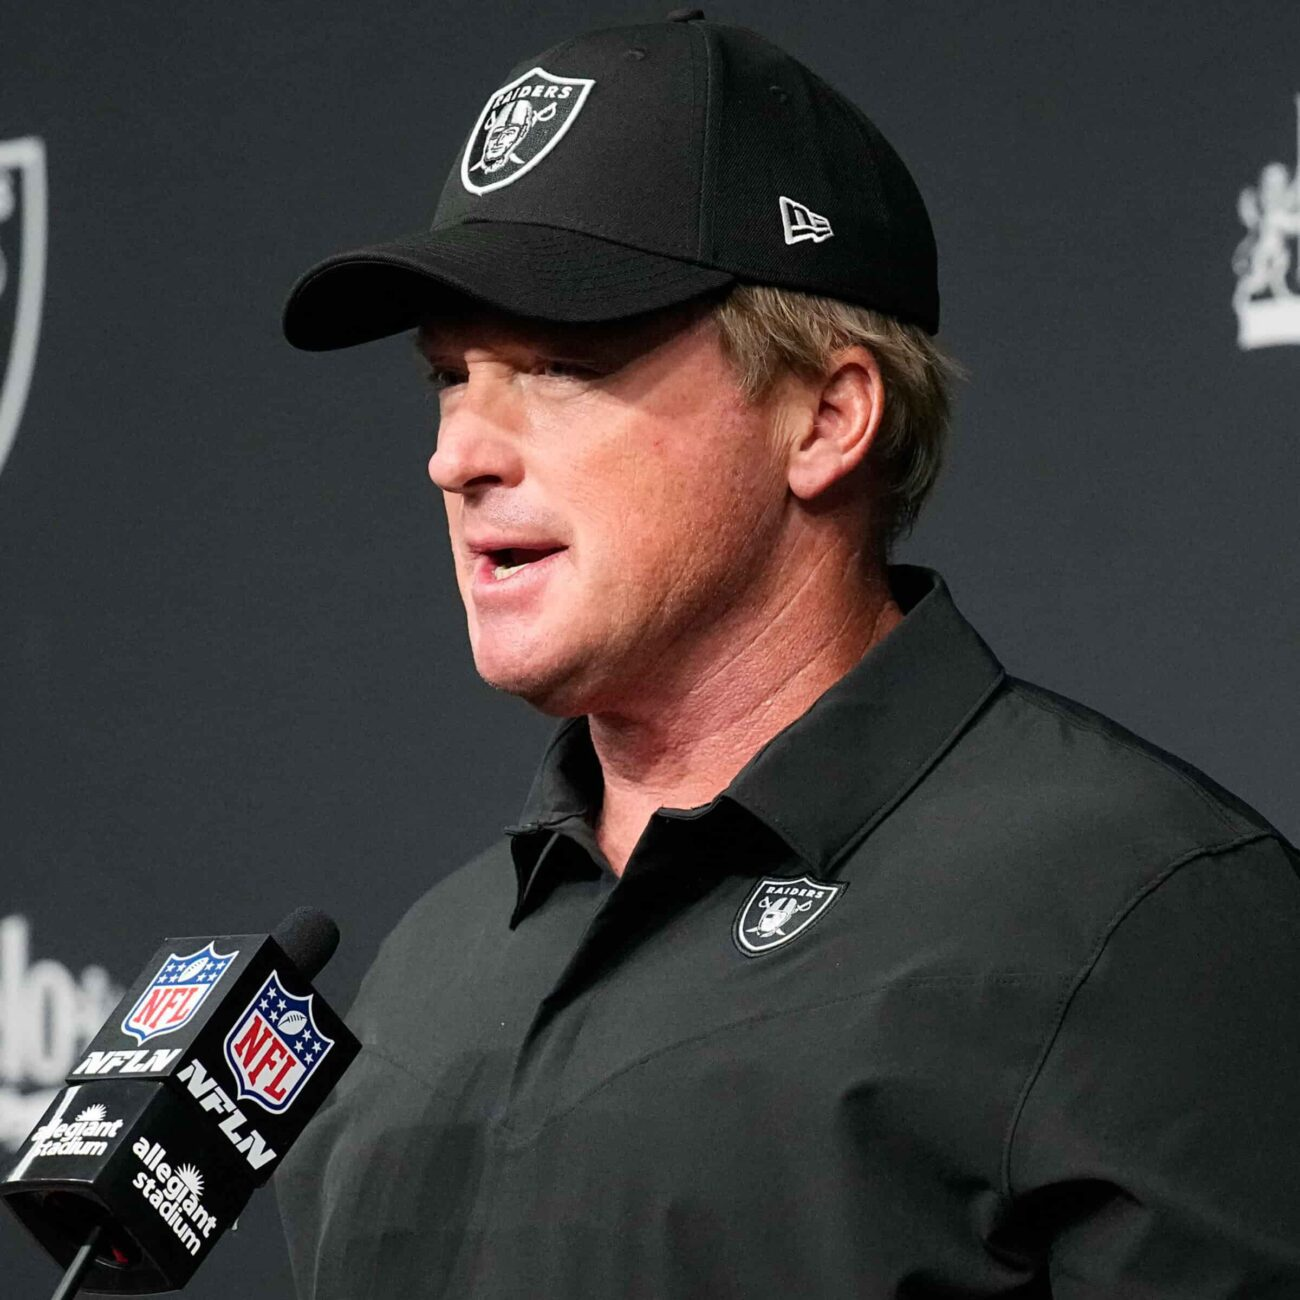 Care to know the net worth of (possibly racist, misogynistic and homophobic) head coach of the Las Vegas Raiders? Join us and learn the latest info!